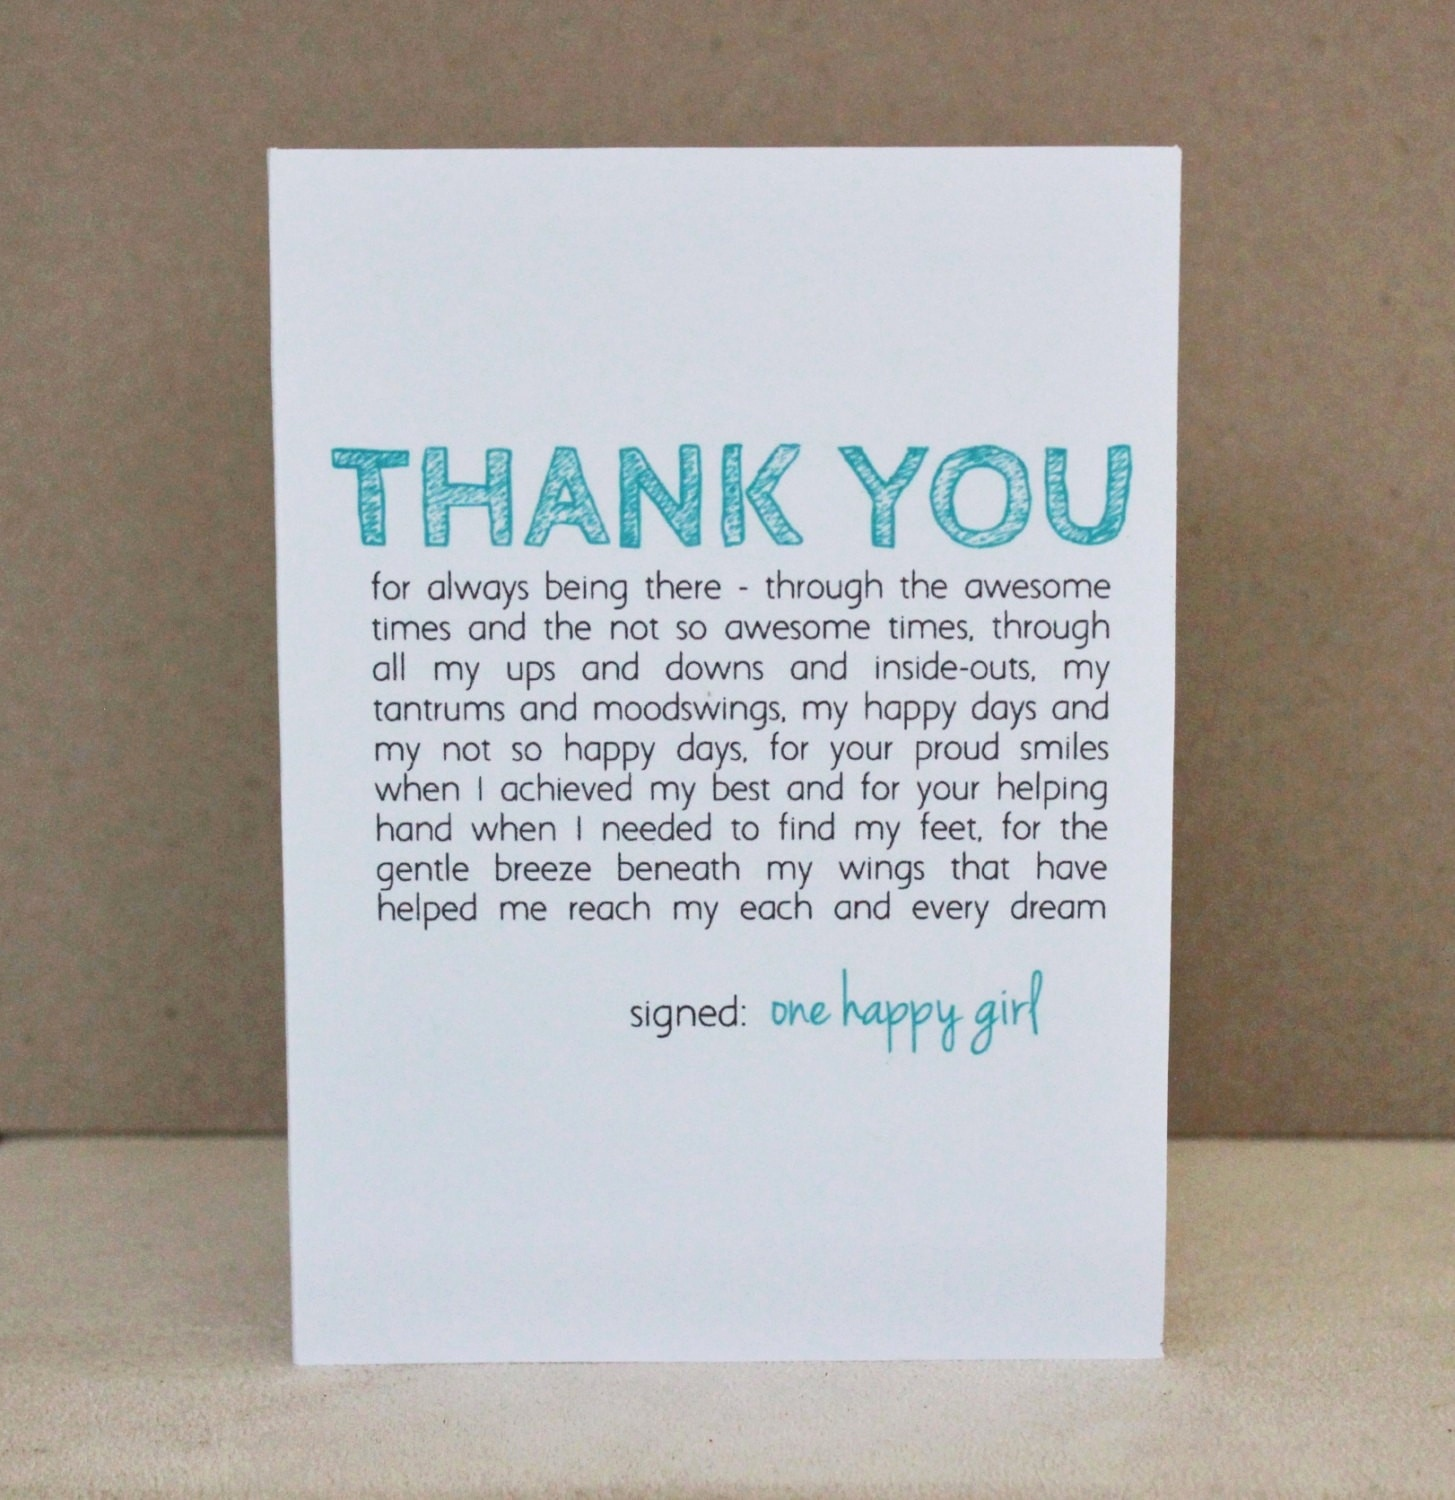 card ideas for best friends birthday ; awesome-birthday-card-ideas-new-birthday-card-to-best-friend-inspirational-gold-heart-full-of-awesome-birthday-card-ideas